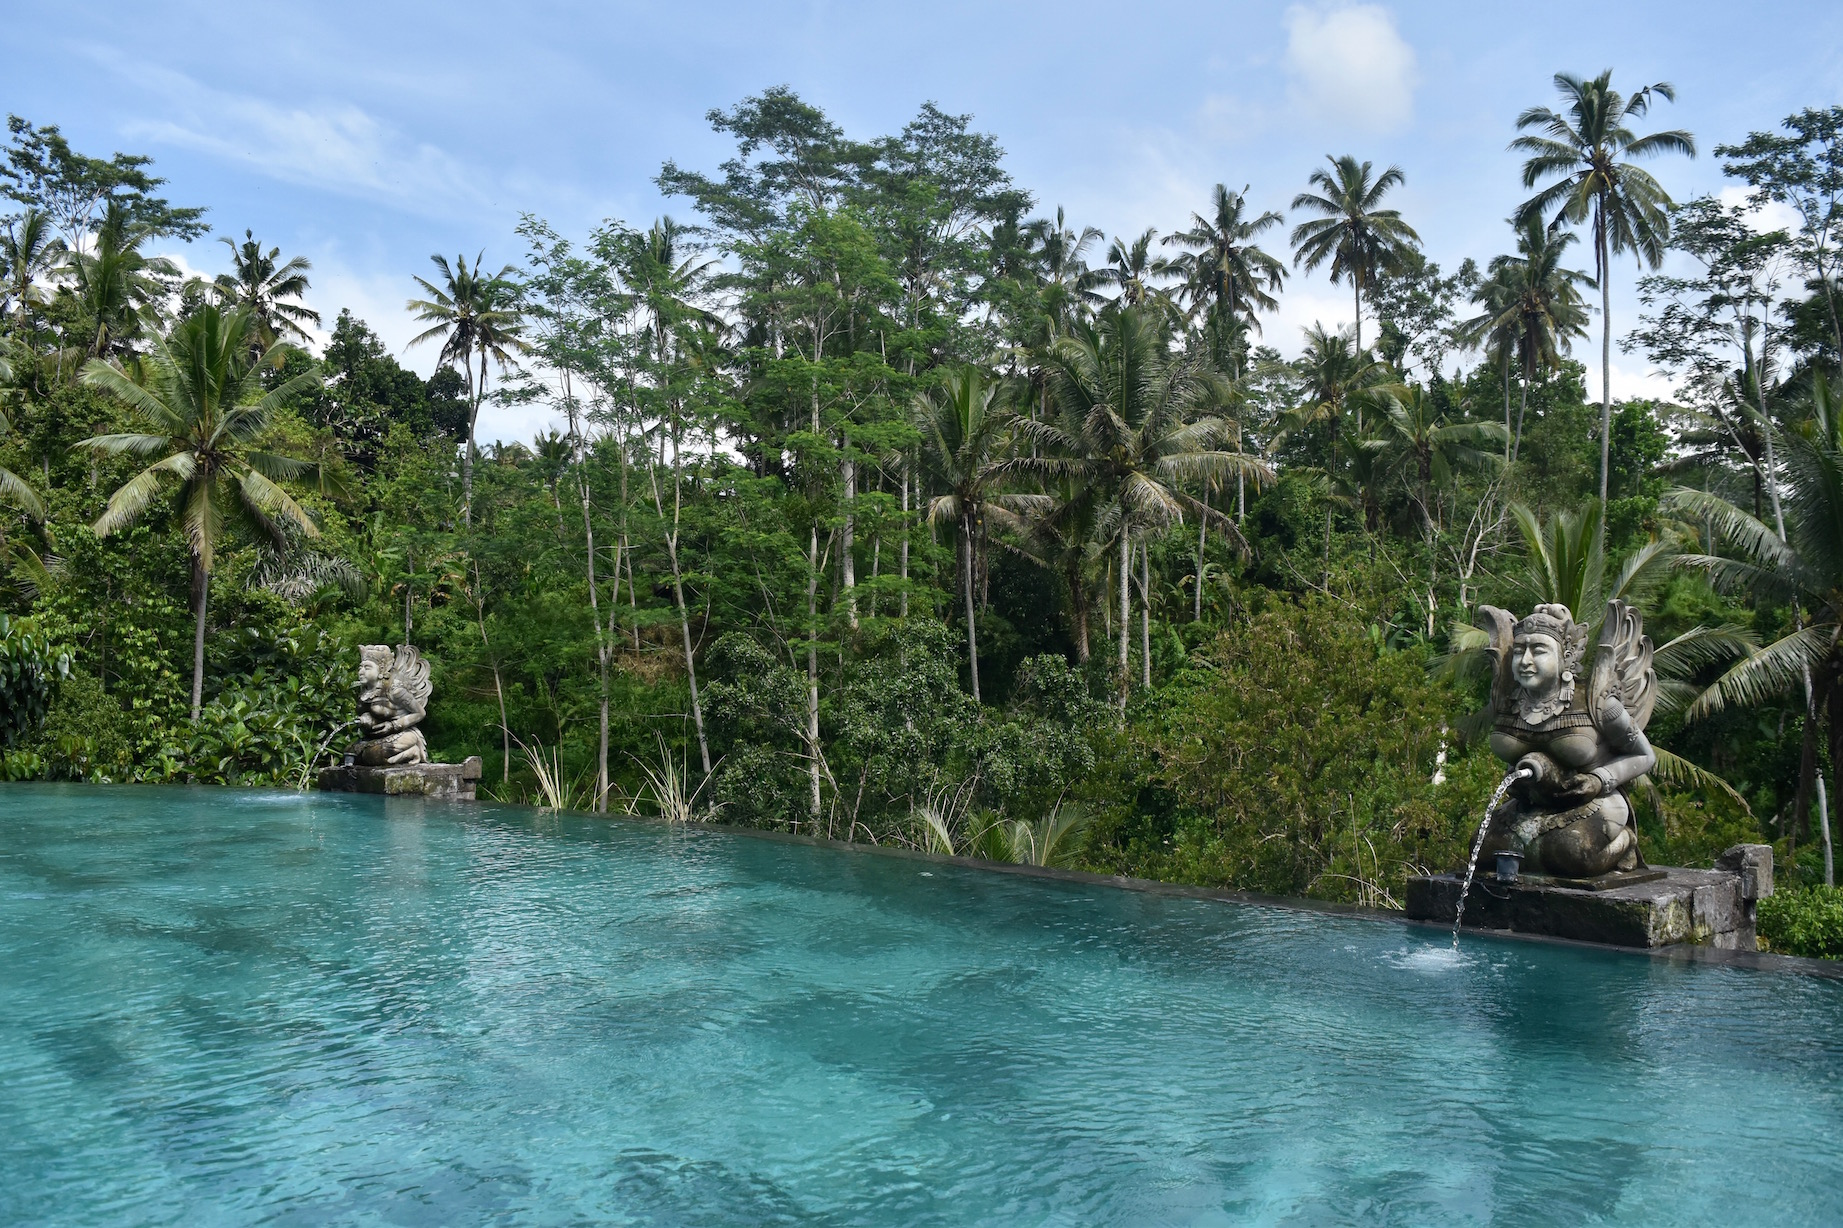 The Kayon Resort in Ubud, Bali – Complete Review with Pictures